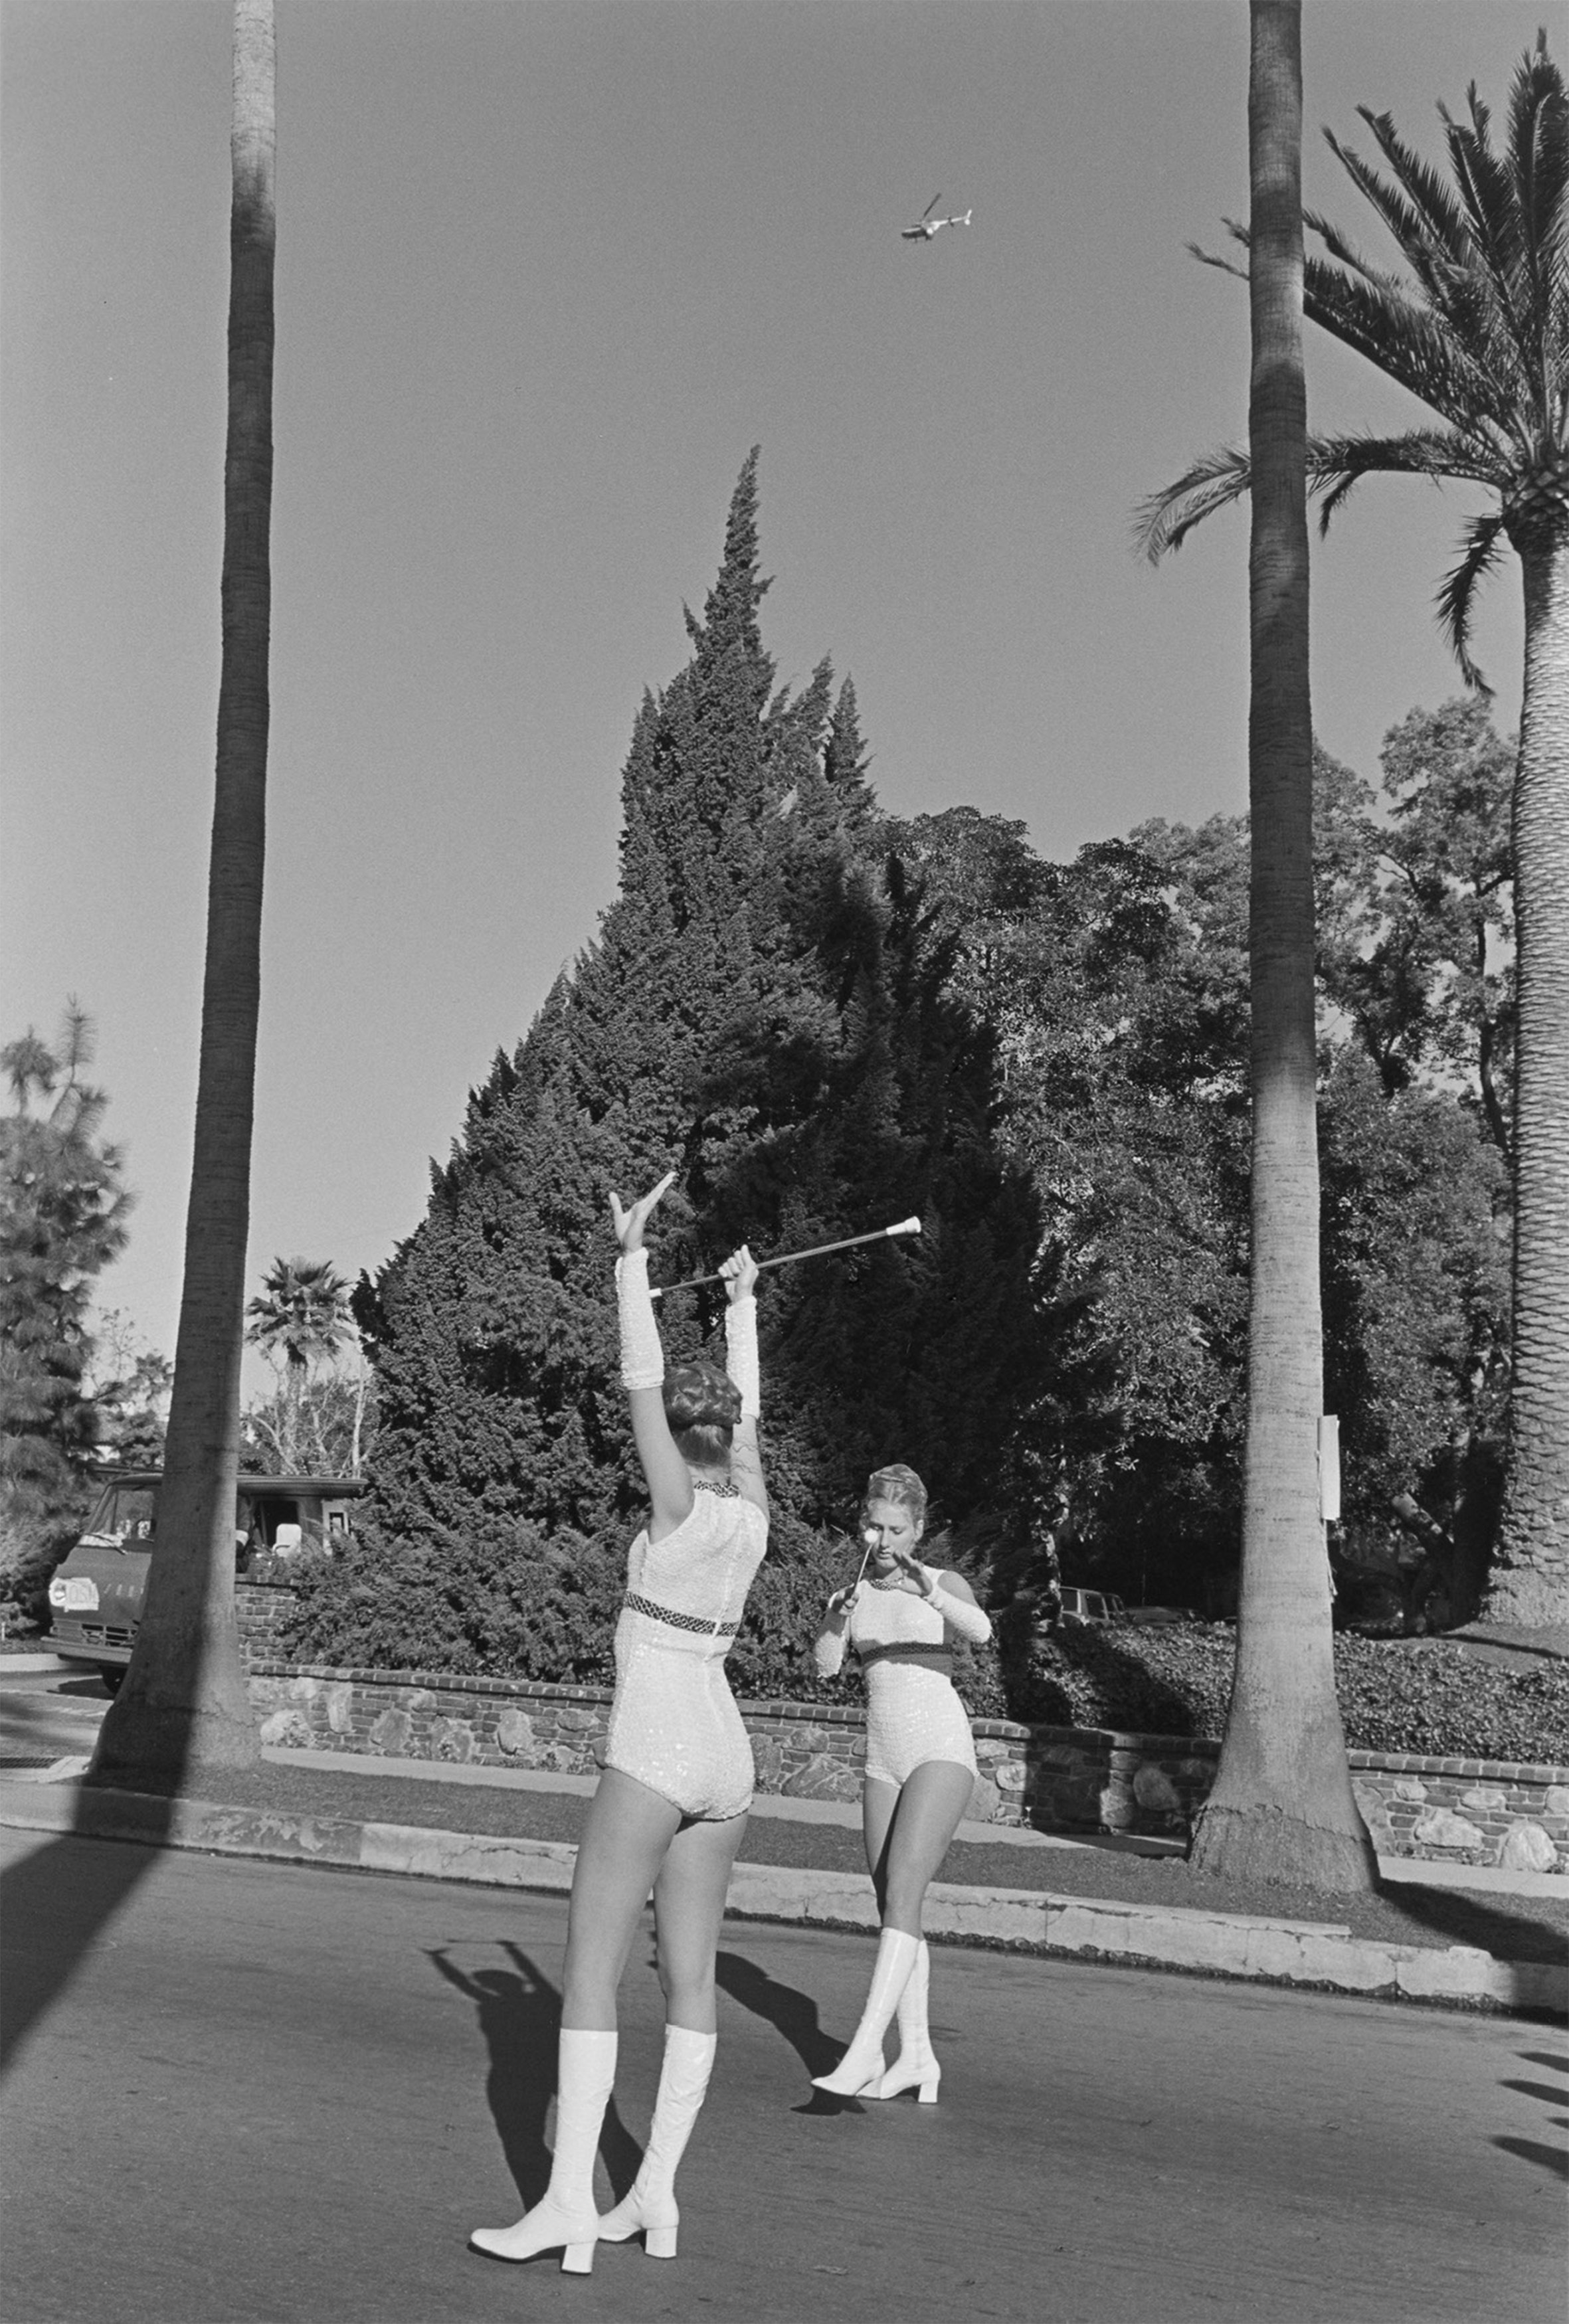 Henry Wessel,   Pasadena, California,   1974 © Henry Wessel; courtesy Pace/MacGill Gallery, New York